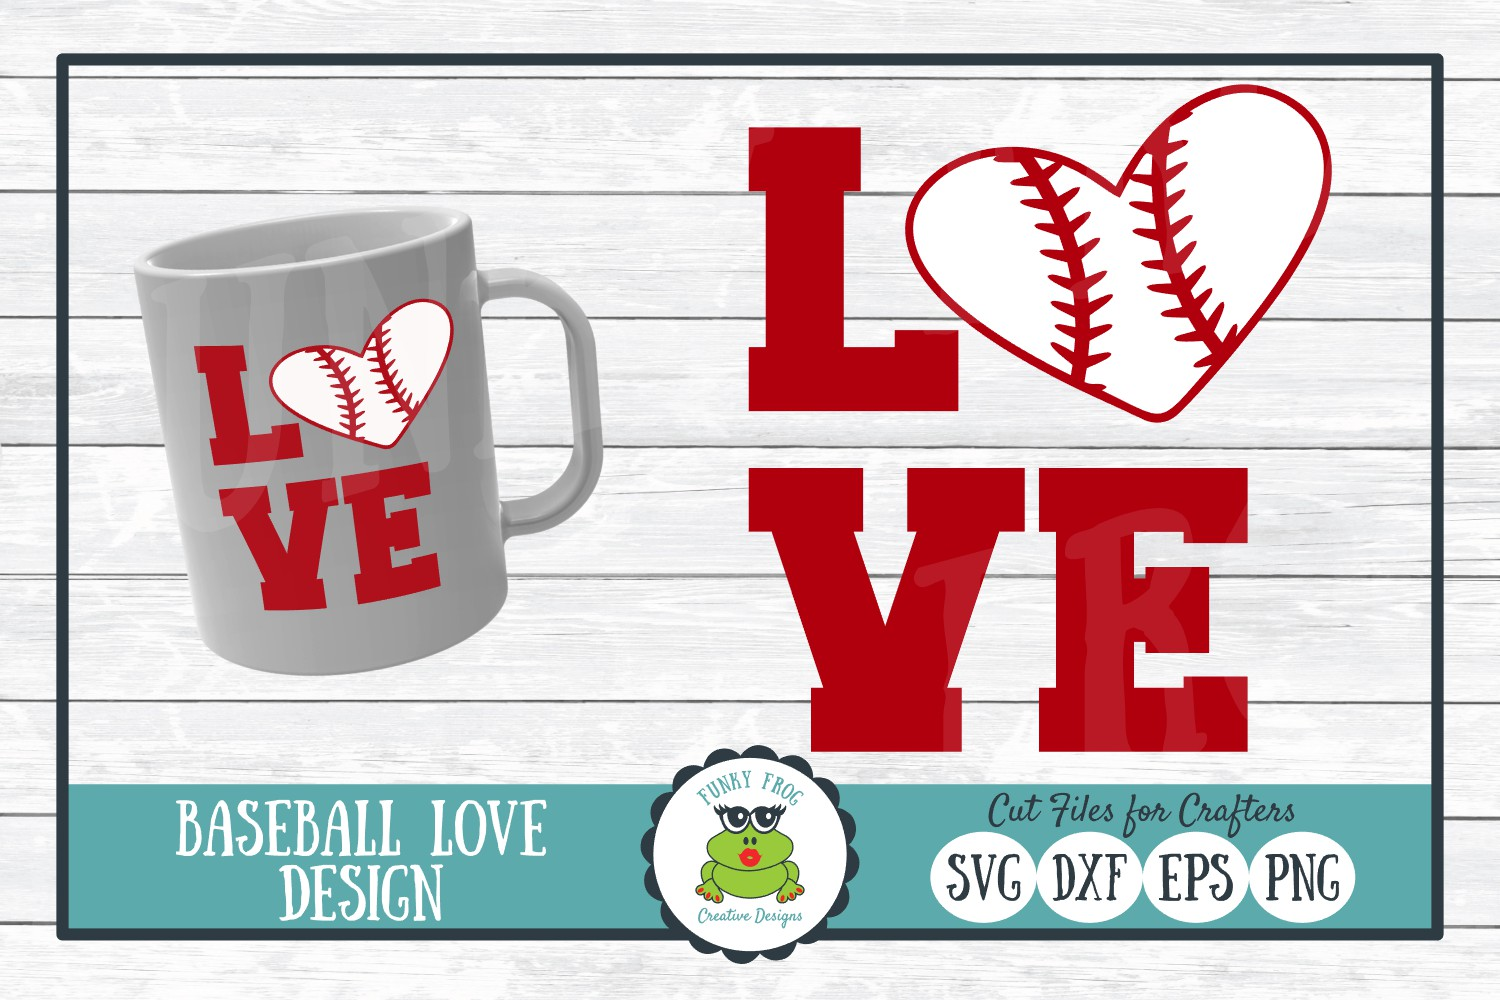 Download Free Baseball Love Graphic By Funkyfrogcreativedesigns Creative Fabrica for Cricut Explore, Silhouette and other cutting machines.